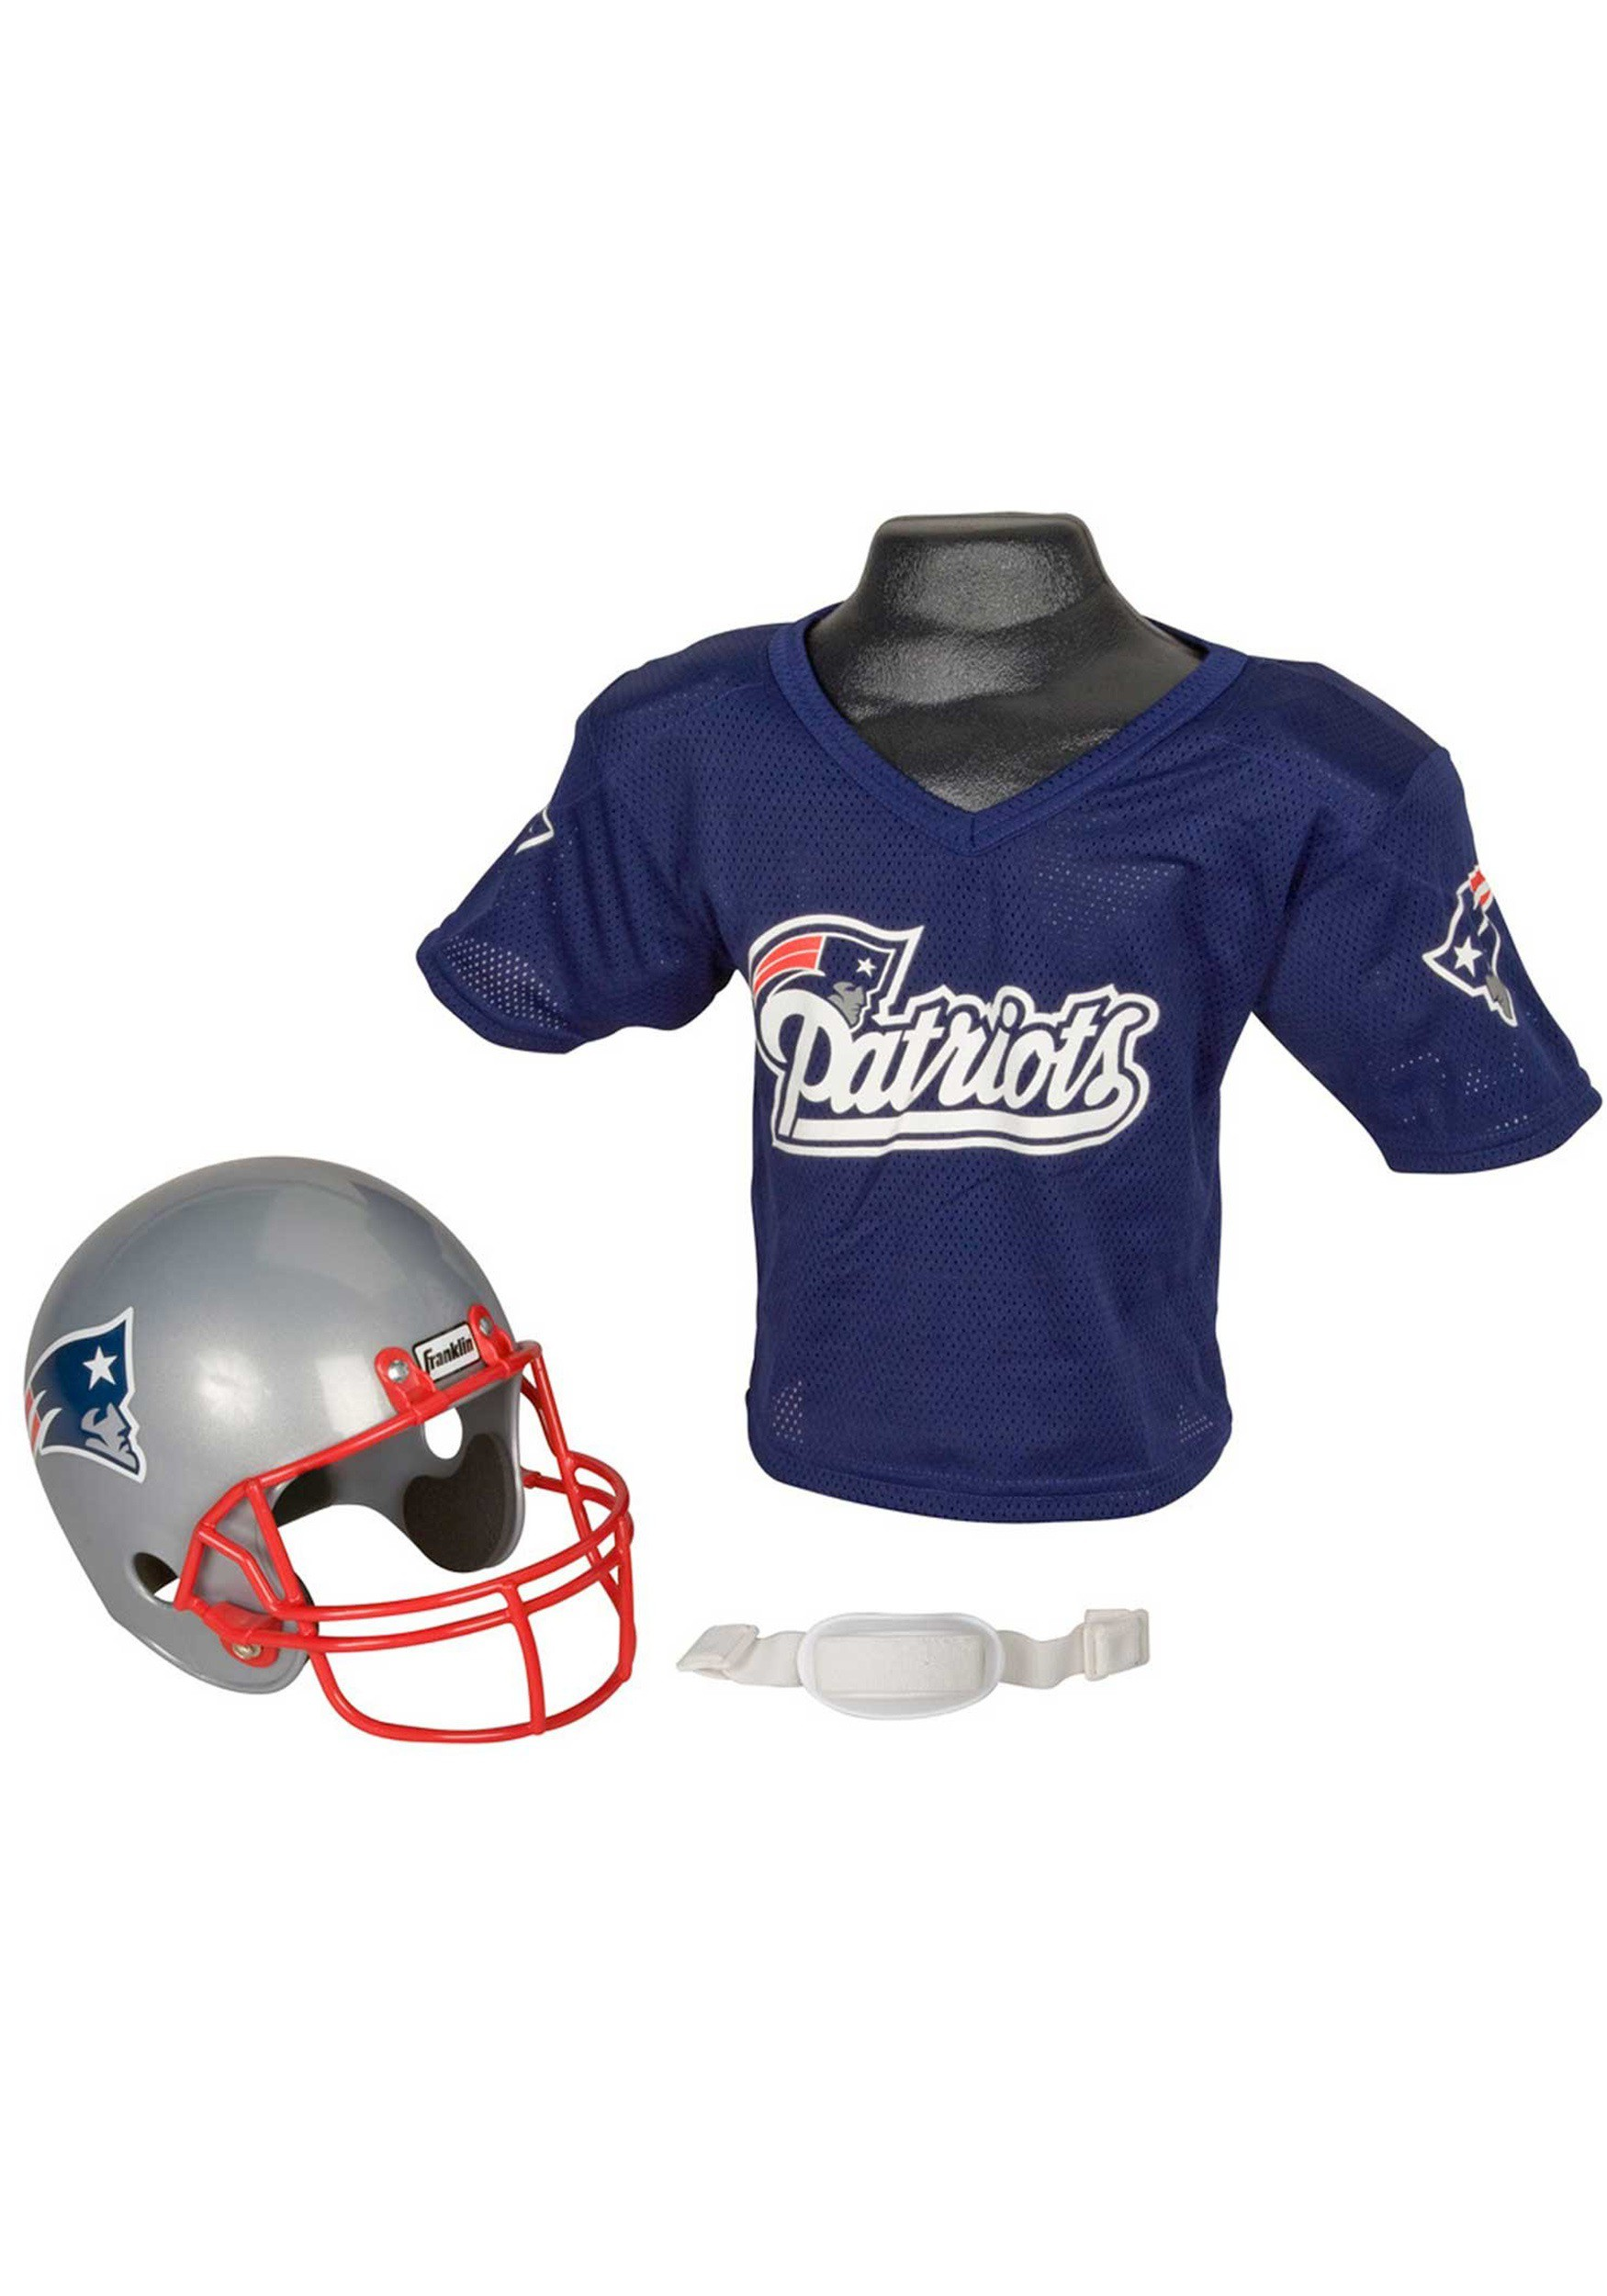 Child NFL New England Patriots Helmet and Jersey Costume Set